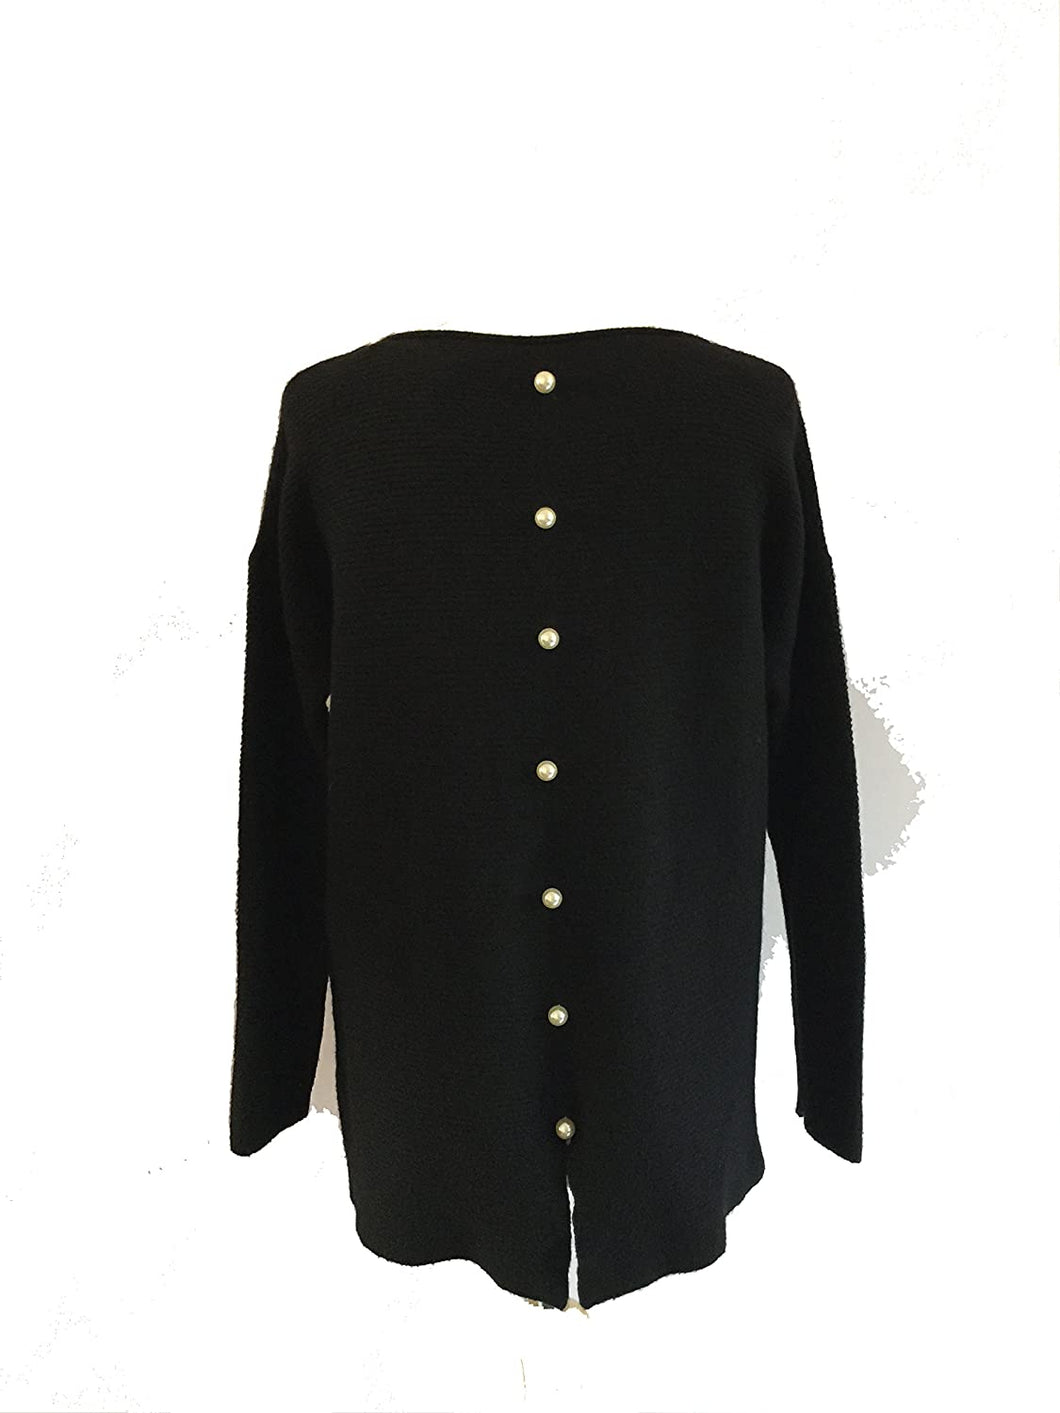 Pamper Yourself Now ltd Black Ribbed Soft Jumper Pearl Detail at Back. Made in Italy (AA40)